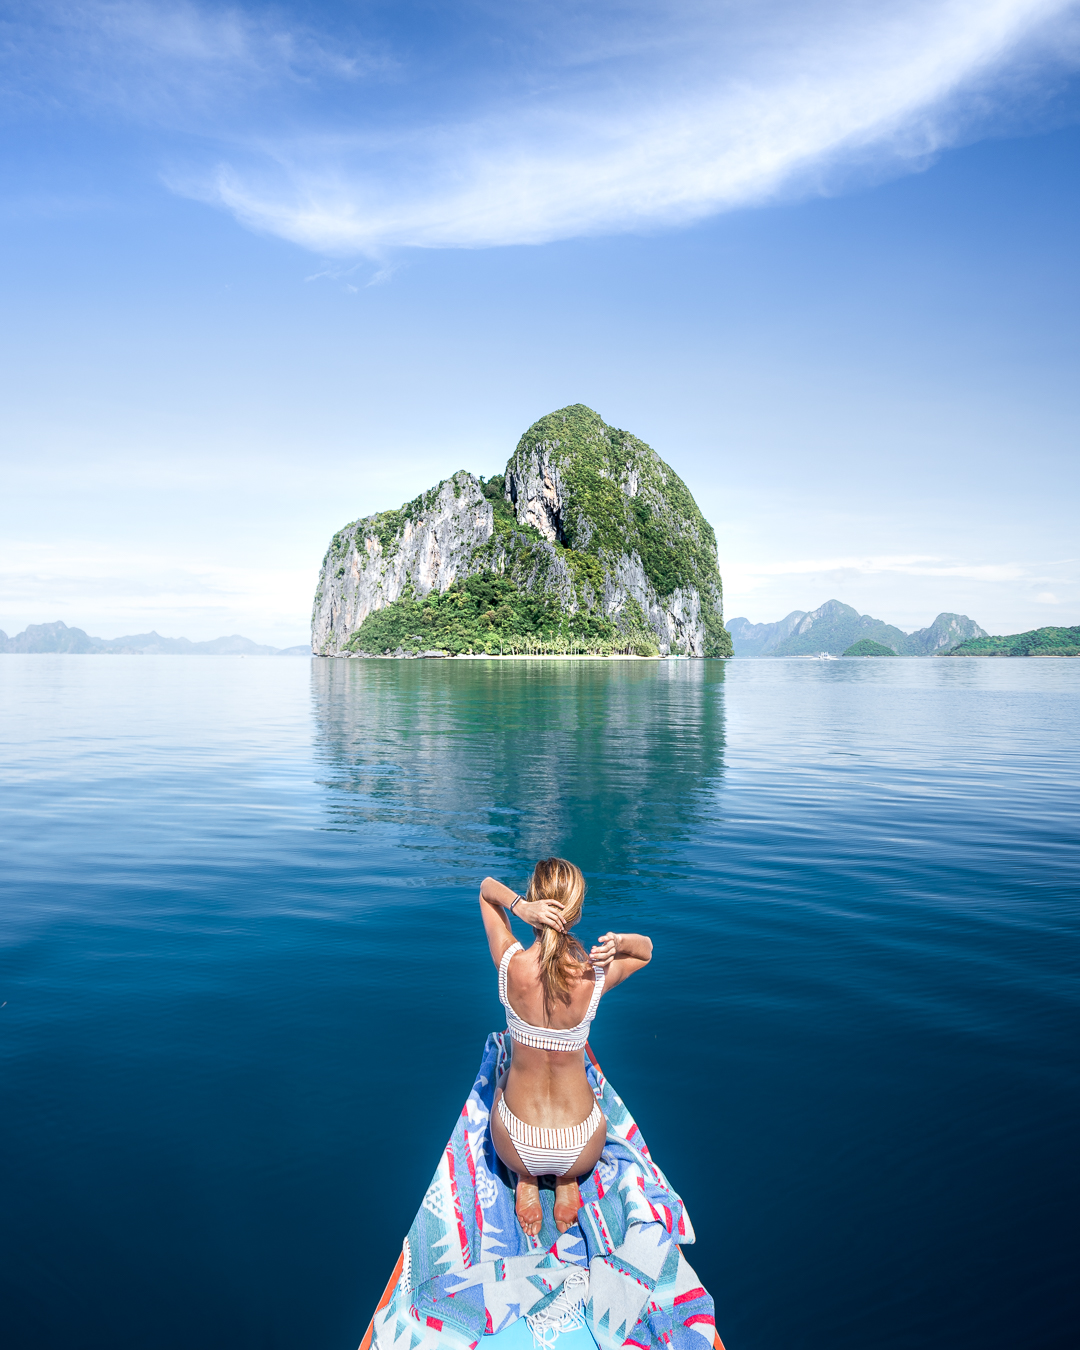 Island hopping around El Nido, Palawan in the Philippines. Photo: Quin Schrock